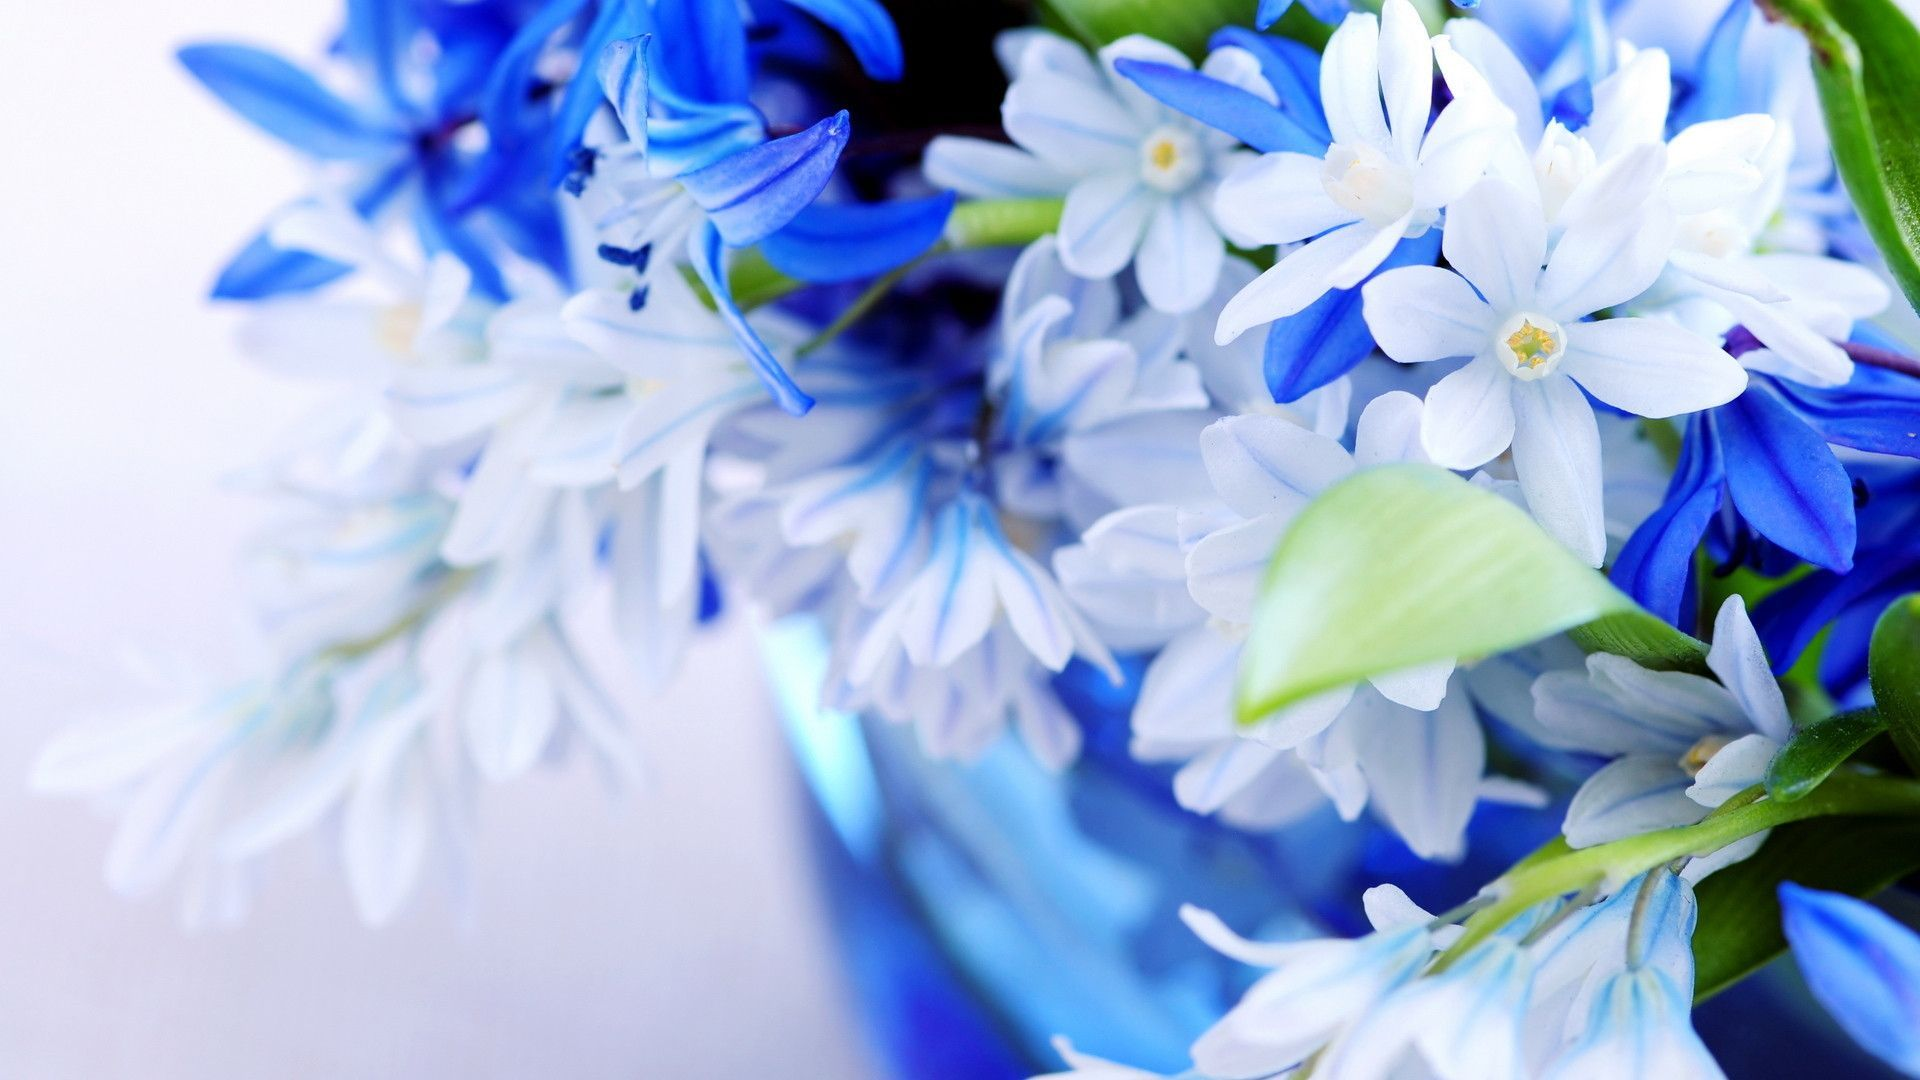 Desktop-Wallpaper-HD-3D-Full-Screen-Flowers - wallpaper.wiki